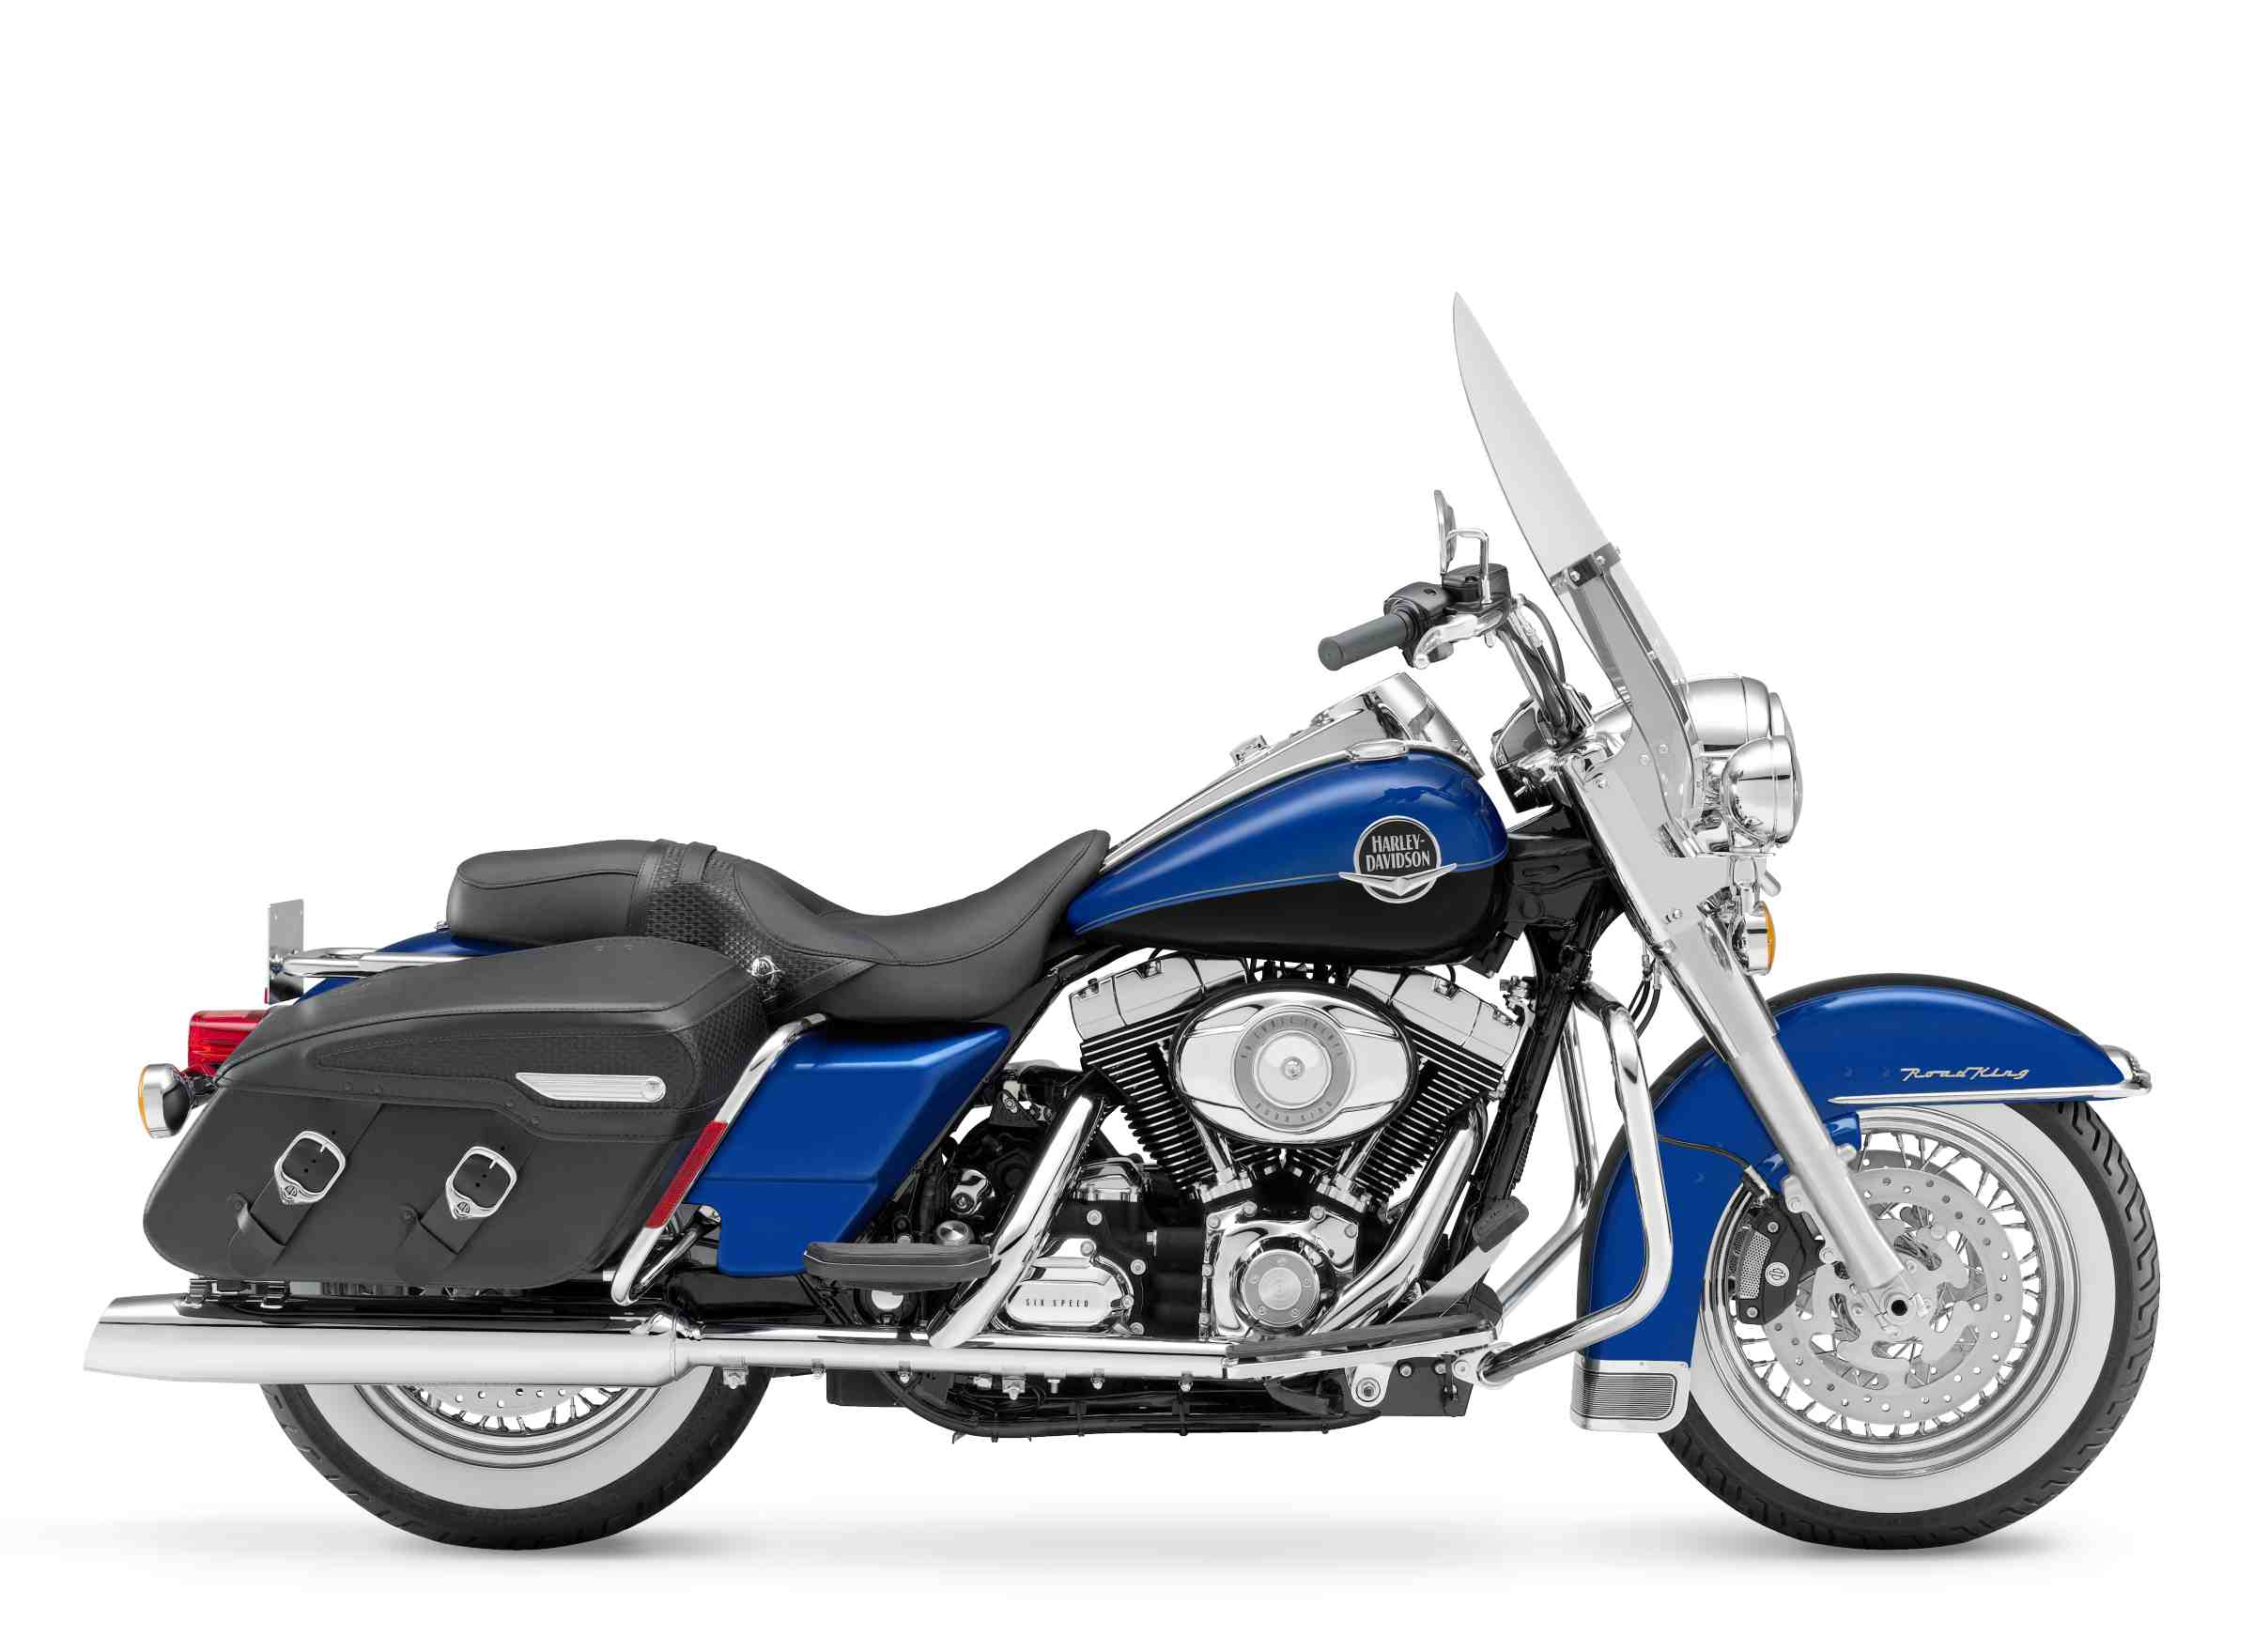 2008 Harley-Davidson Lineup Gallery and Buyer's Guide on